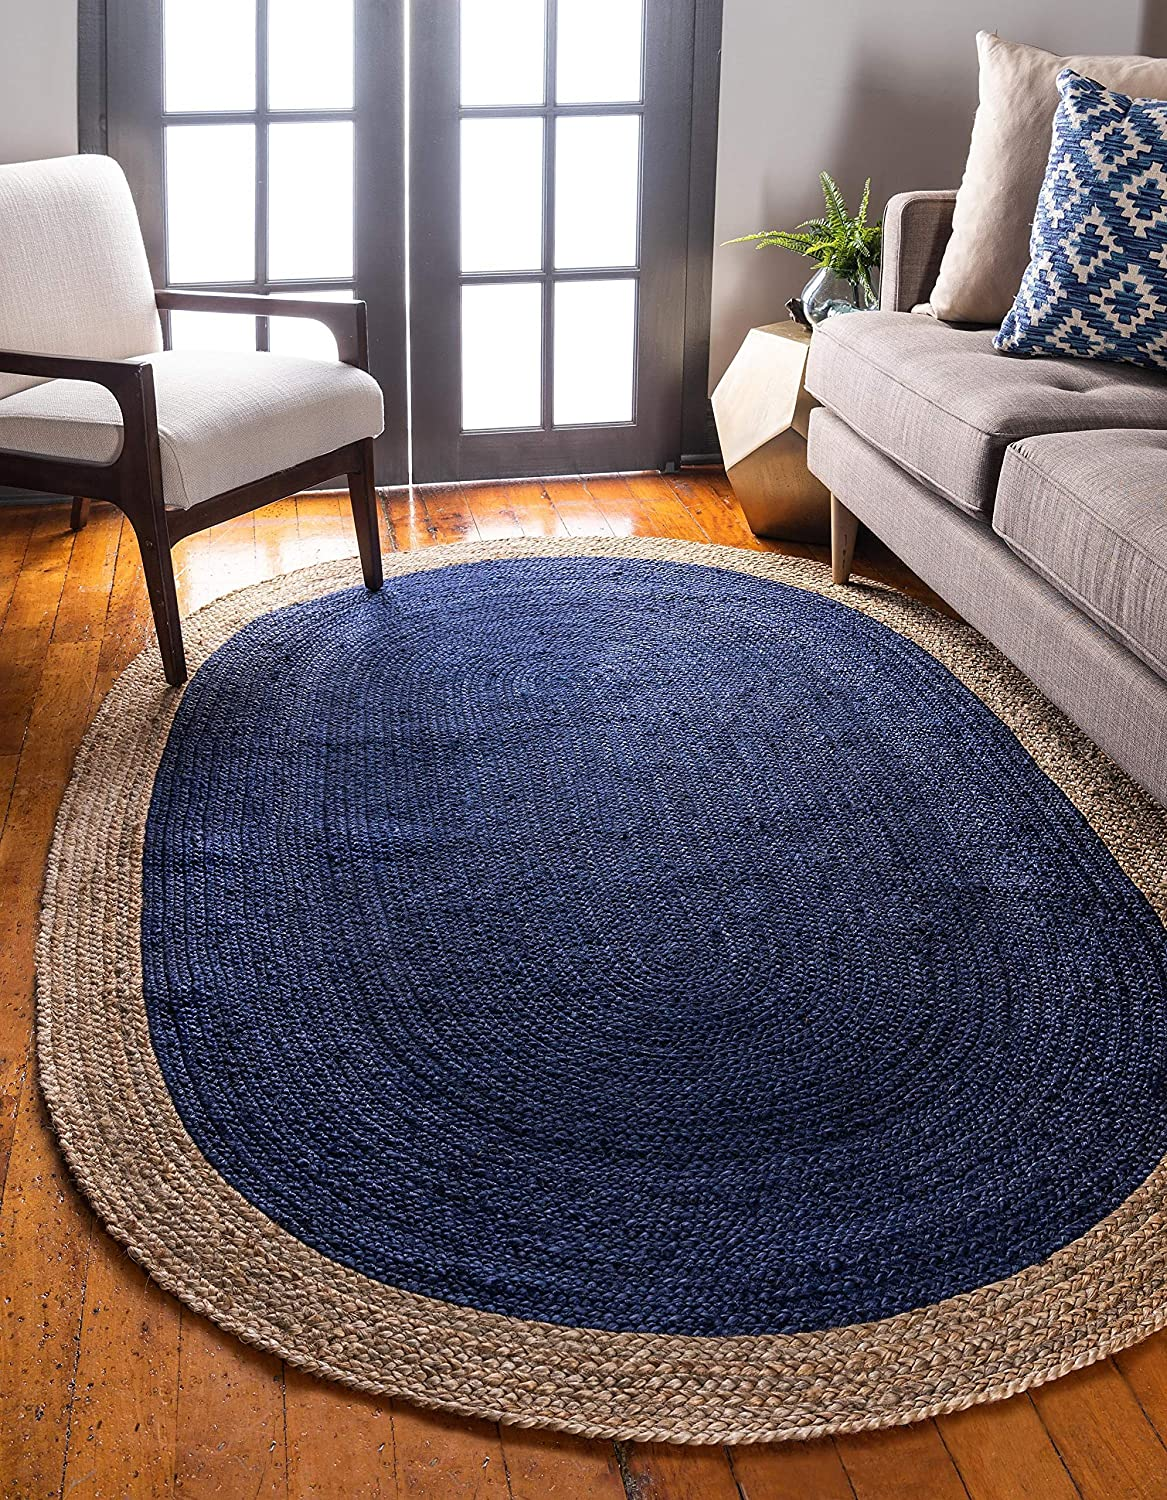 Unique Loom Braided Jute Collection Hand Woven Natural Fibers Navy bluee Oval Rug (3' x 5')